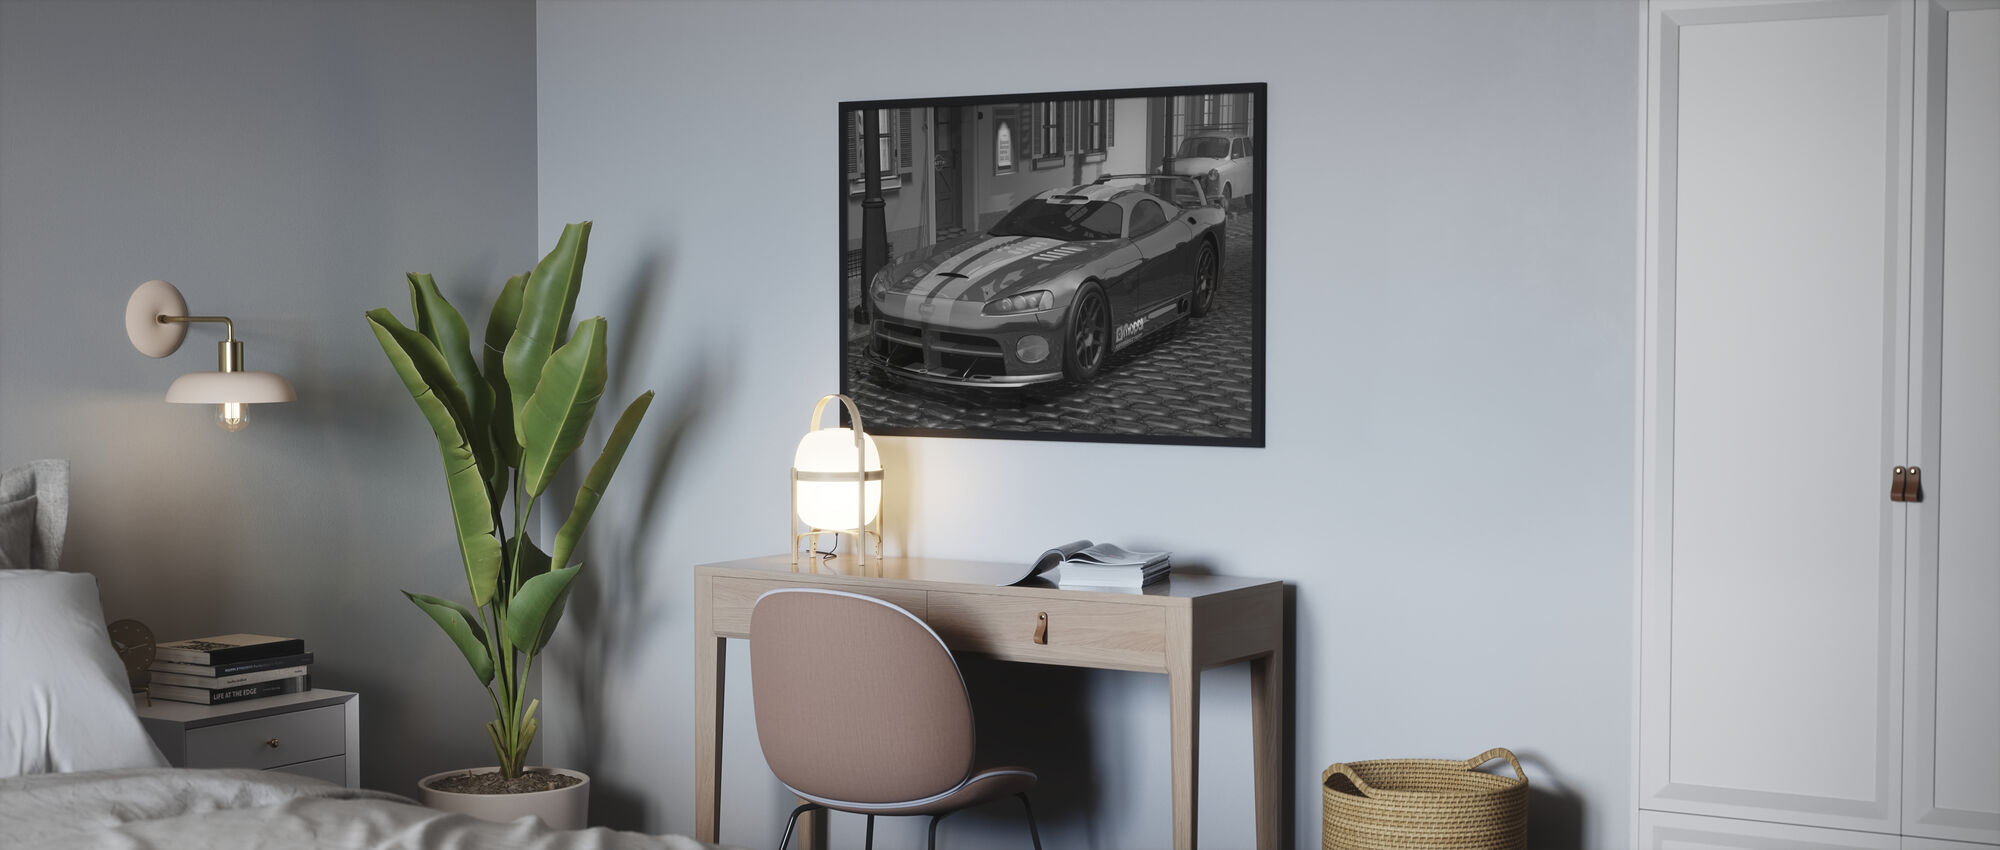 Voiture Rouge Rapide BW - Affiche - Chambre